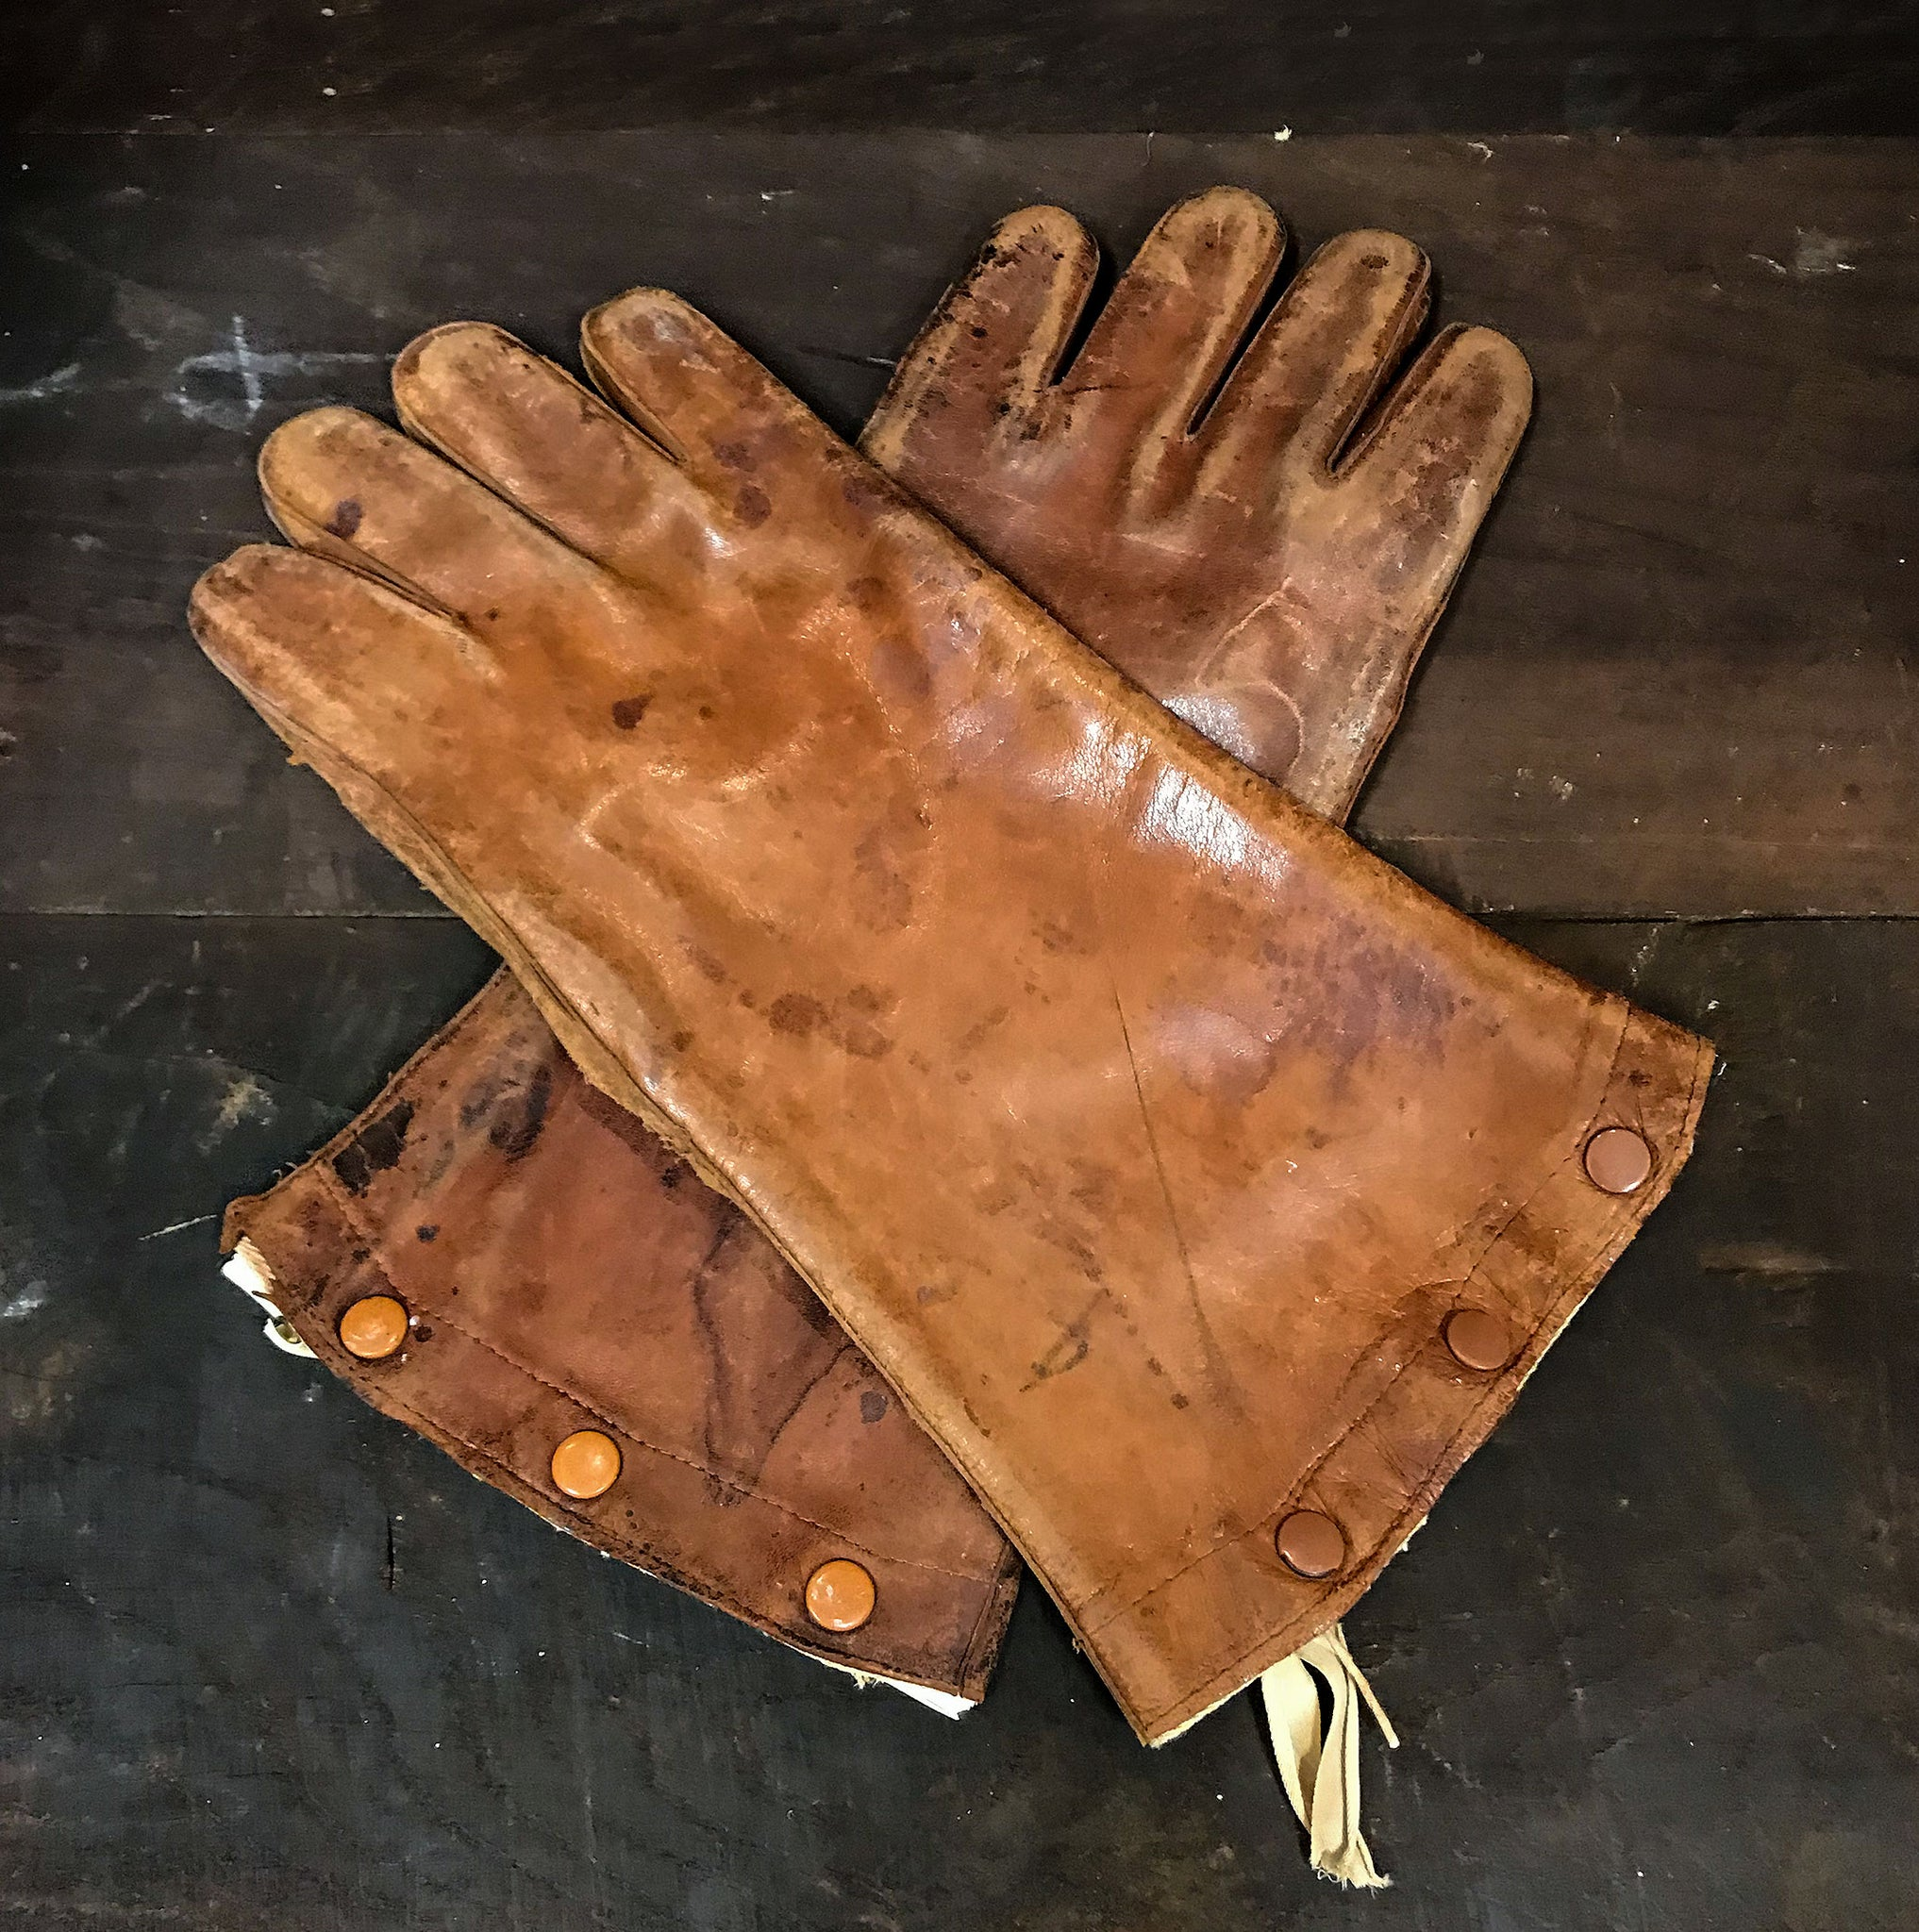 Pair of vintage leather X Ray gloves lined with lead. SHOP NOW - www.intovintage.co.uk